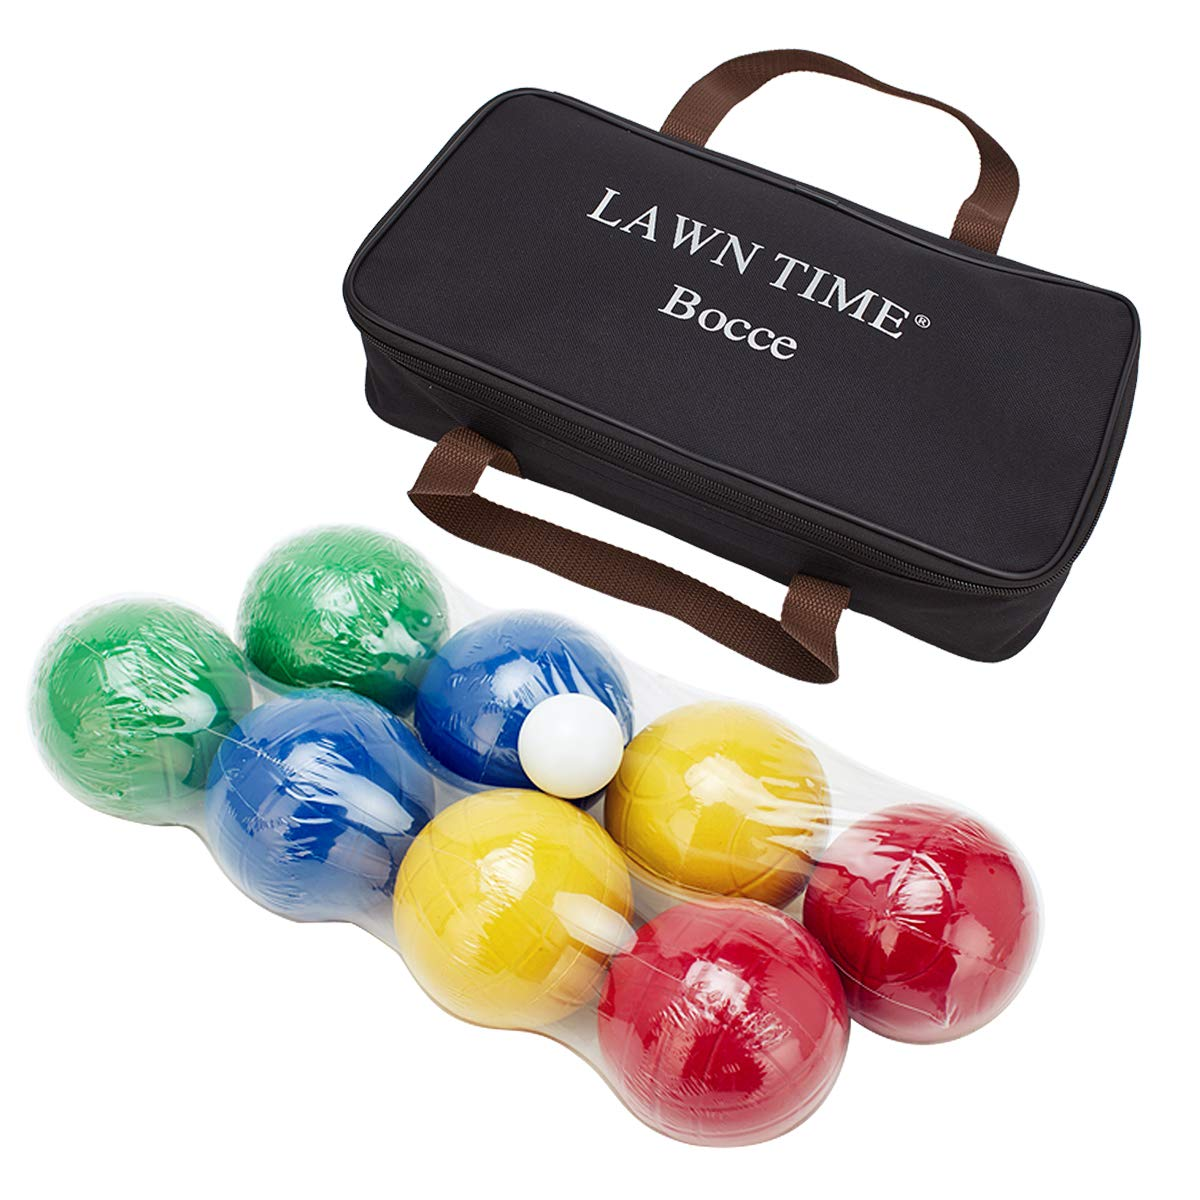 LAWN TIME 90mm Bocce Ball Set Includes 8 Recreational Plastic Balls, 1 Pallino or Jack Ball and 1 Nylon Zip-Up Carrying Case, Beach, Backyard or Outdoor Party Game, Family Fun for All Ages by LAWN TIME